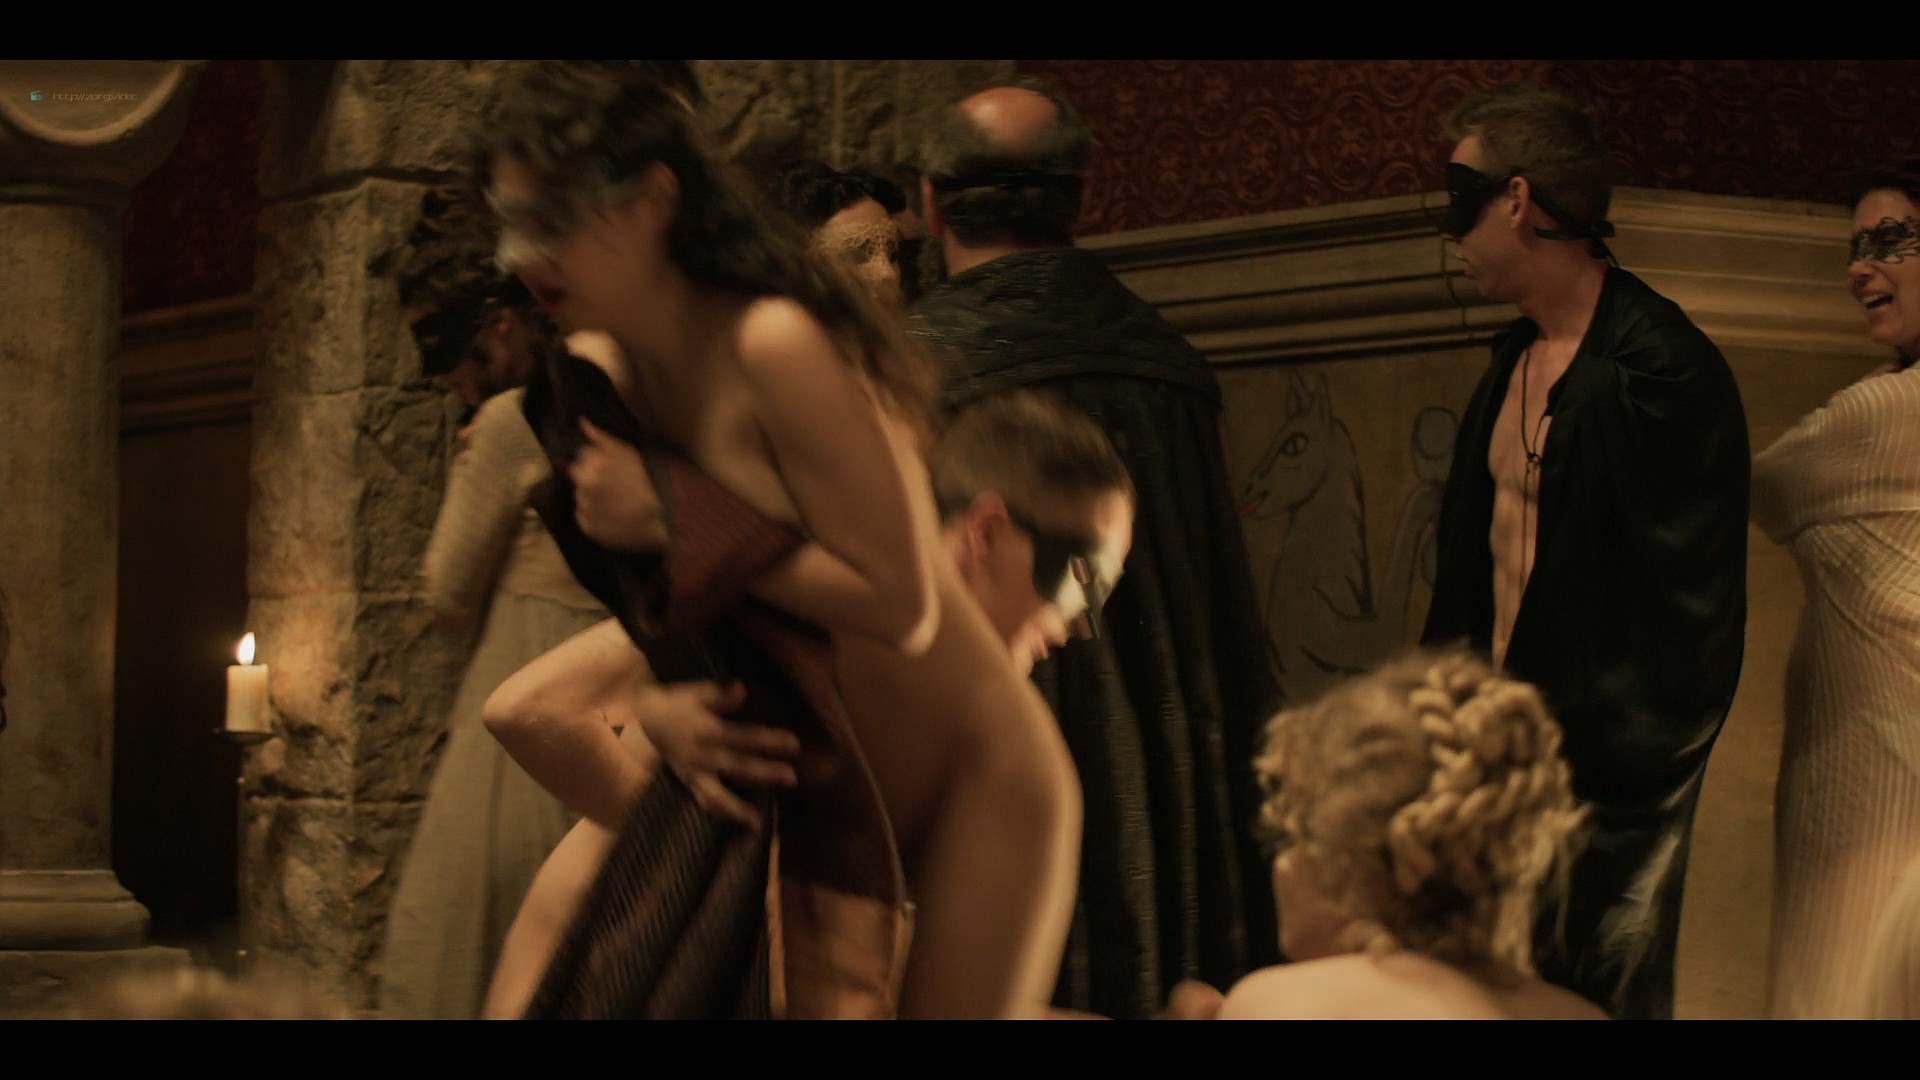 Anya Chalotra nude others nude too - The Witcher (2019) s1e5-6 HD 1080p WEB (16)